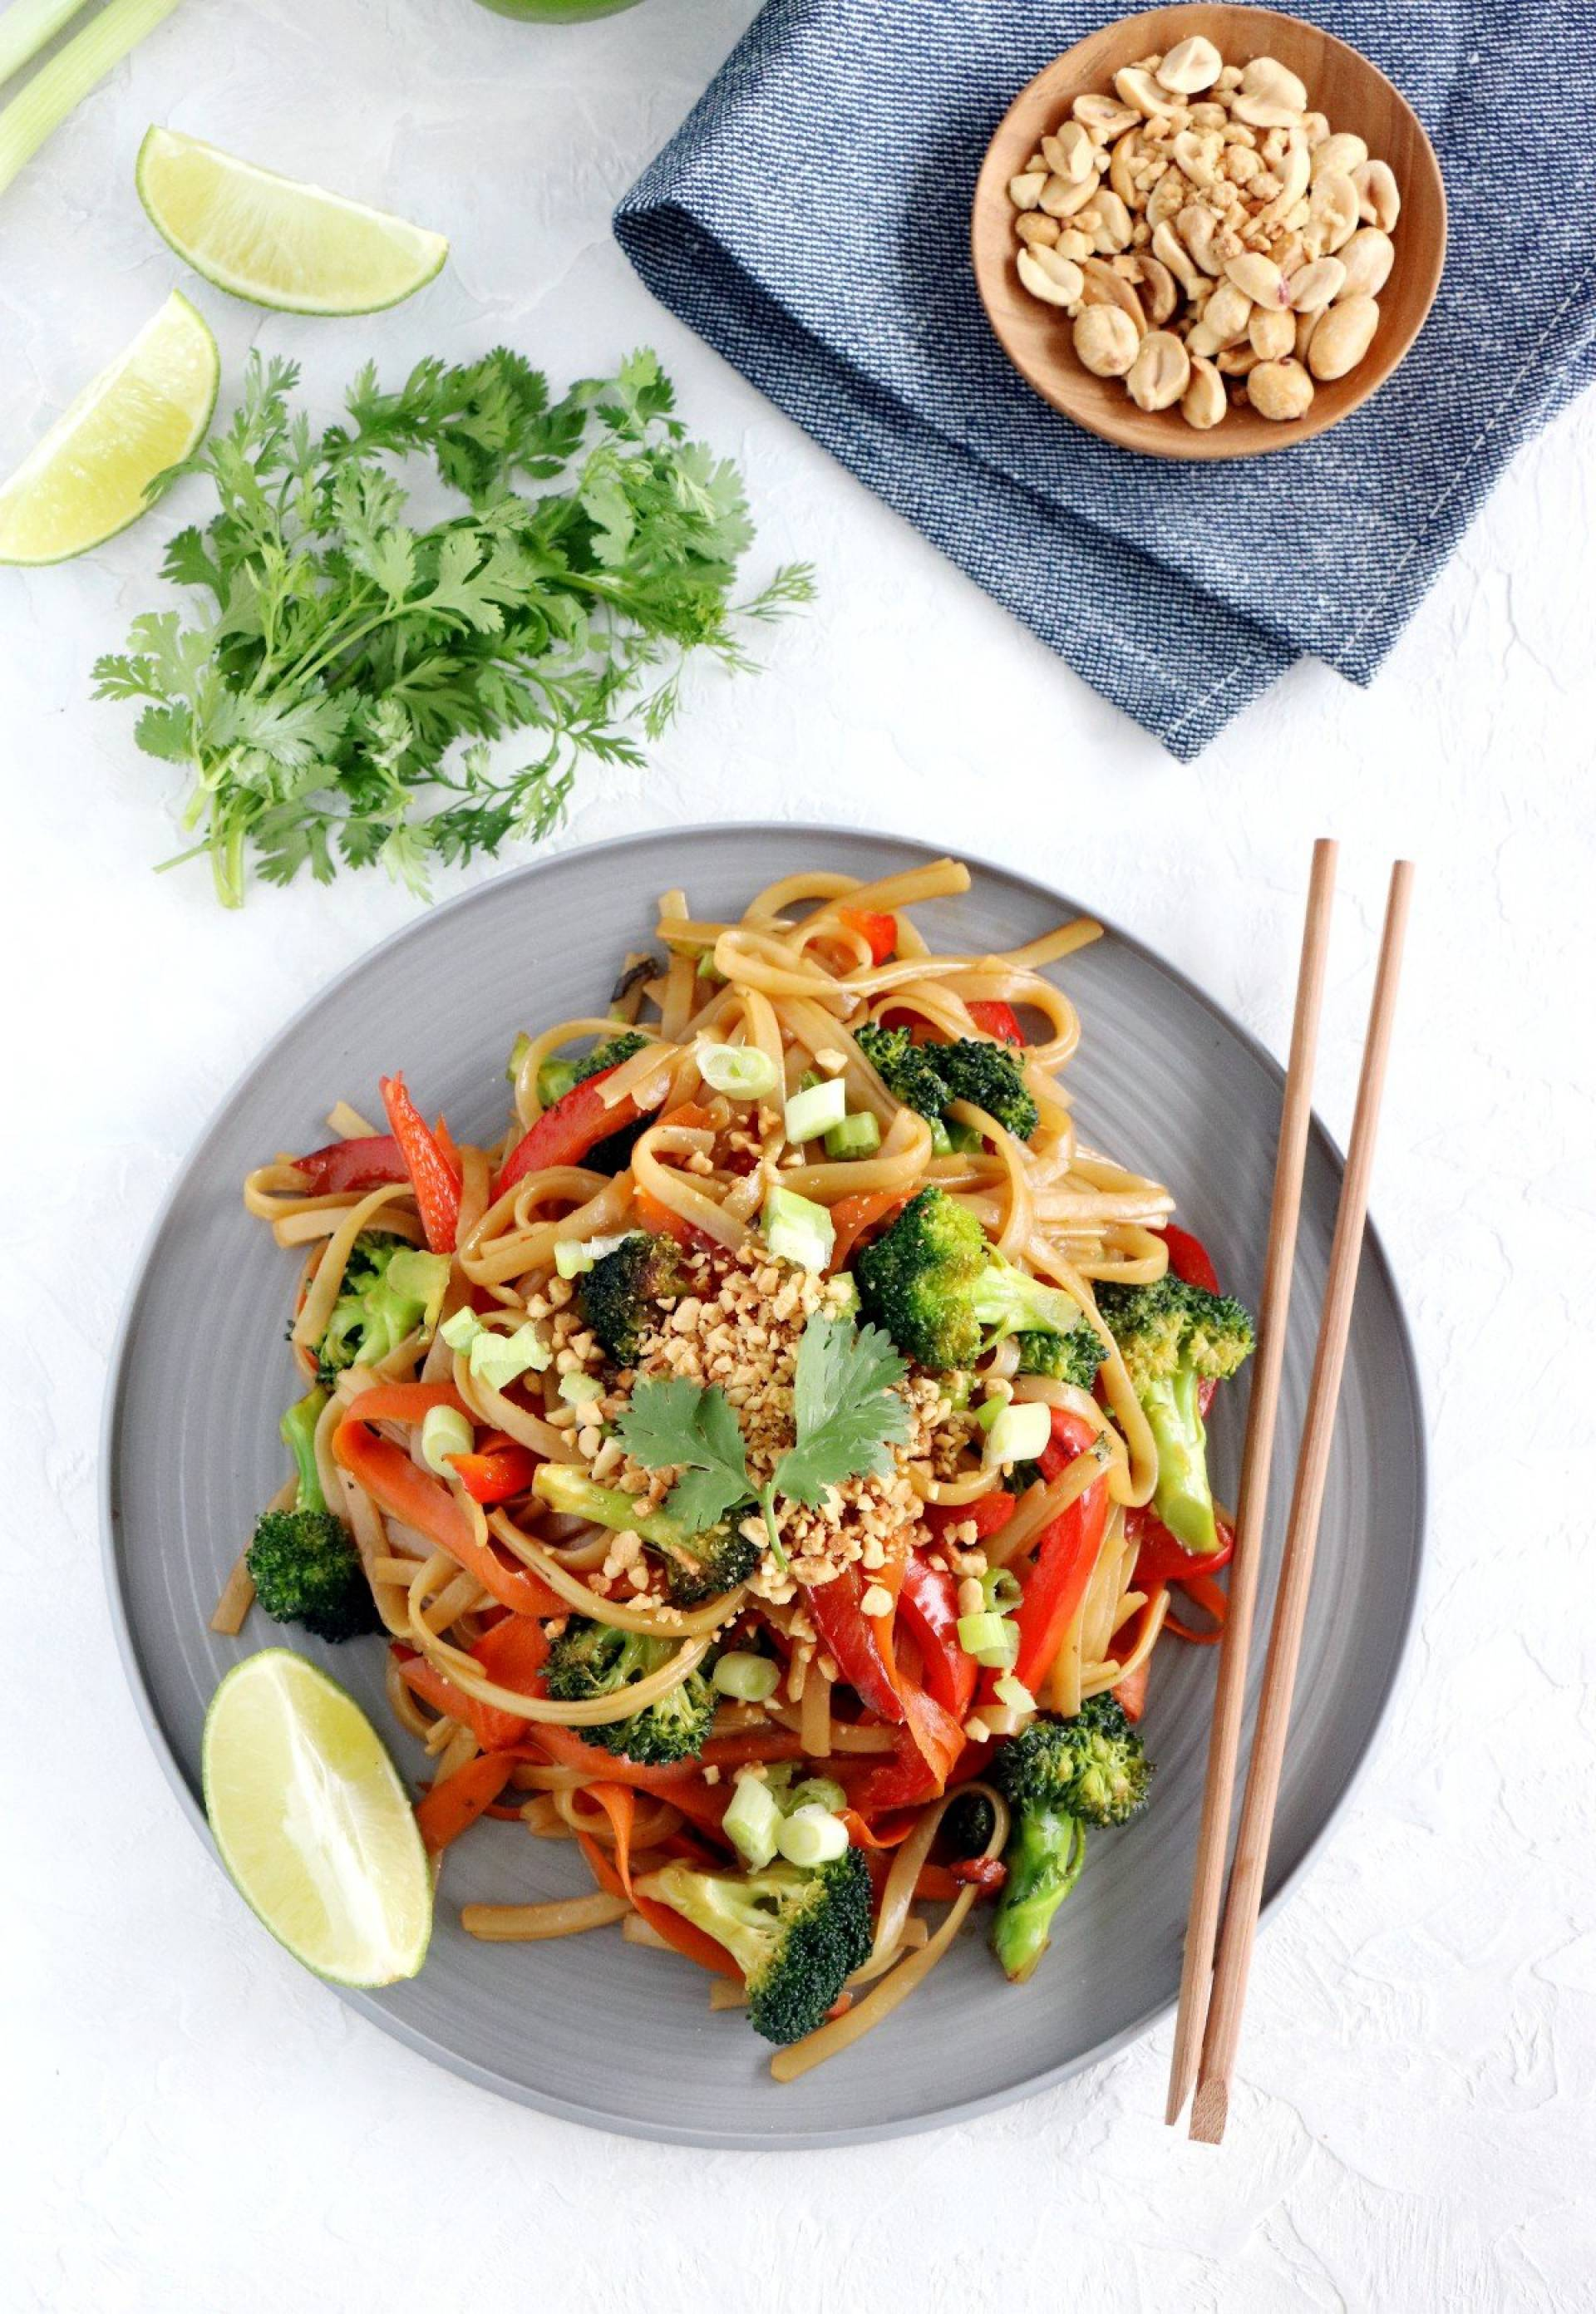 Full Moon Party Pad Thai - Nut Free